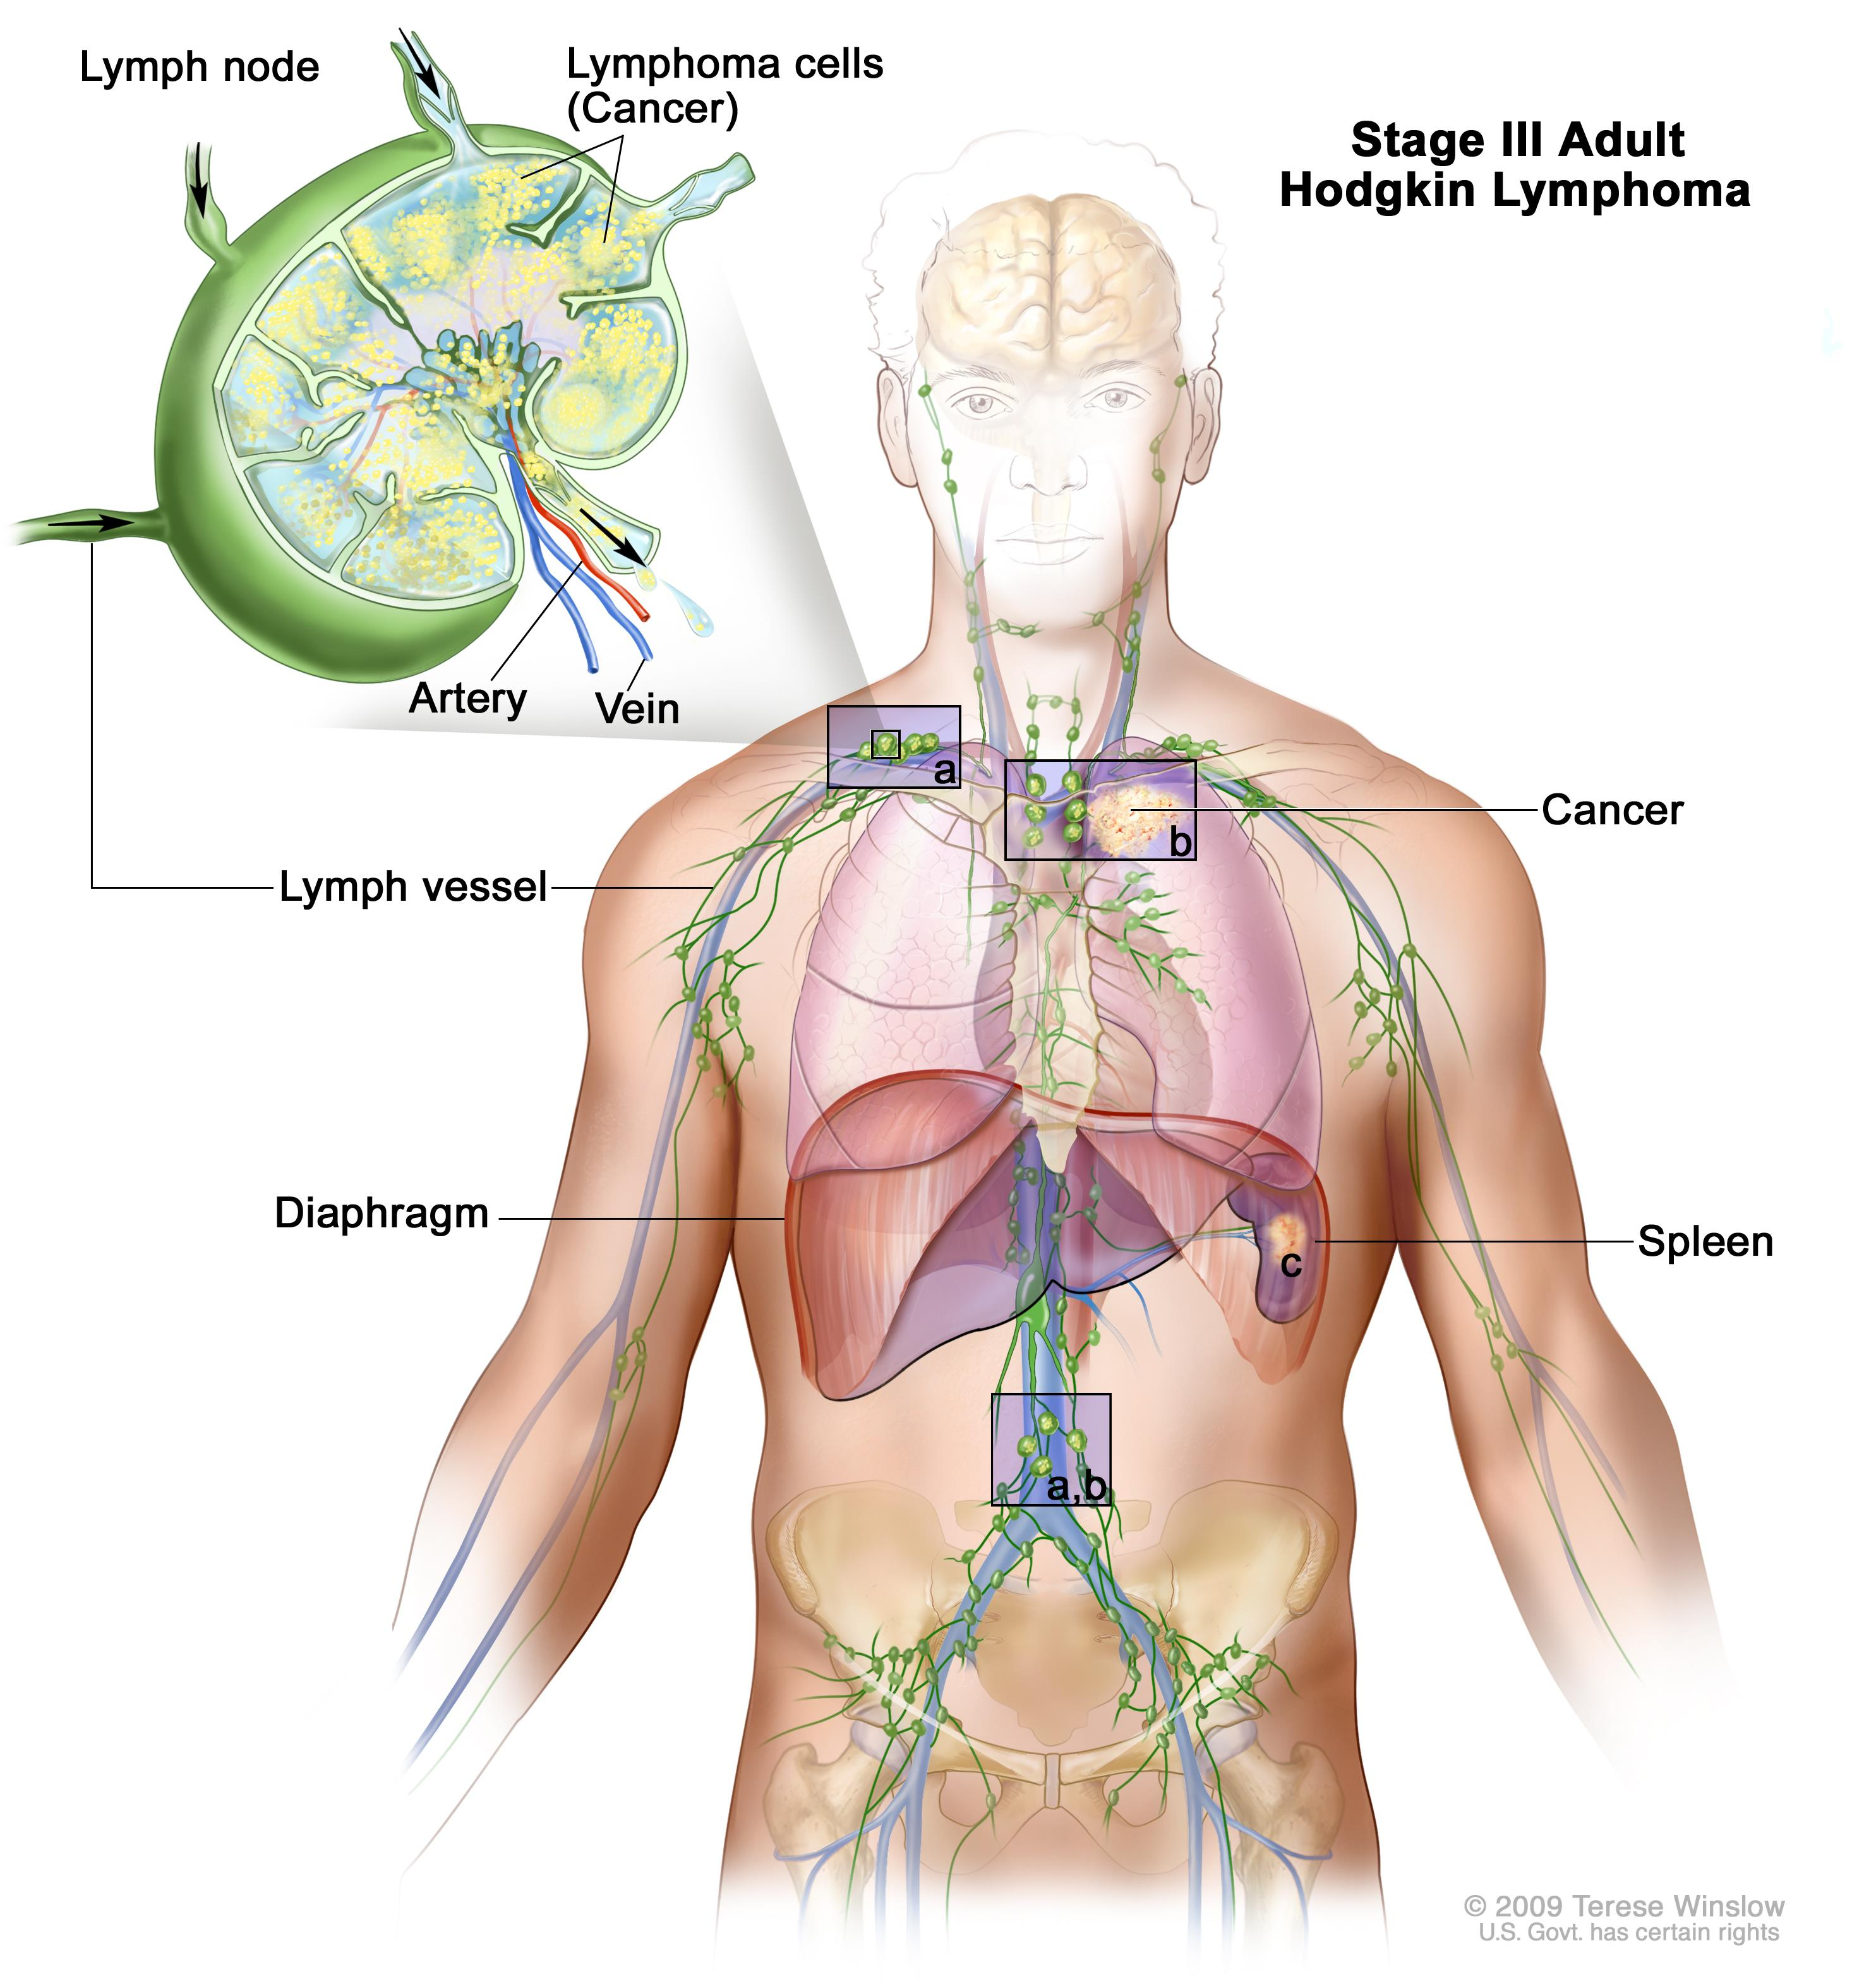 Stage III adult Hodgkin lymphoma; drawing shows cancer in lymph node groups above and below the diaphragm, in the left lung, and in the spleen. An inset shows a lymph node with a lymph vessel, an artery, and a vein. Lymphoma cells containing cancer are shown in the lymph node.